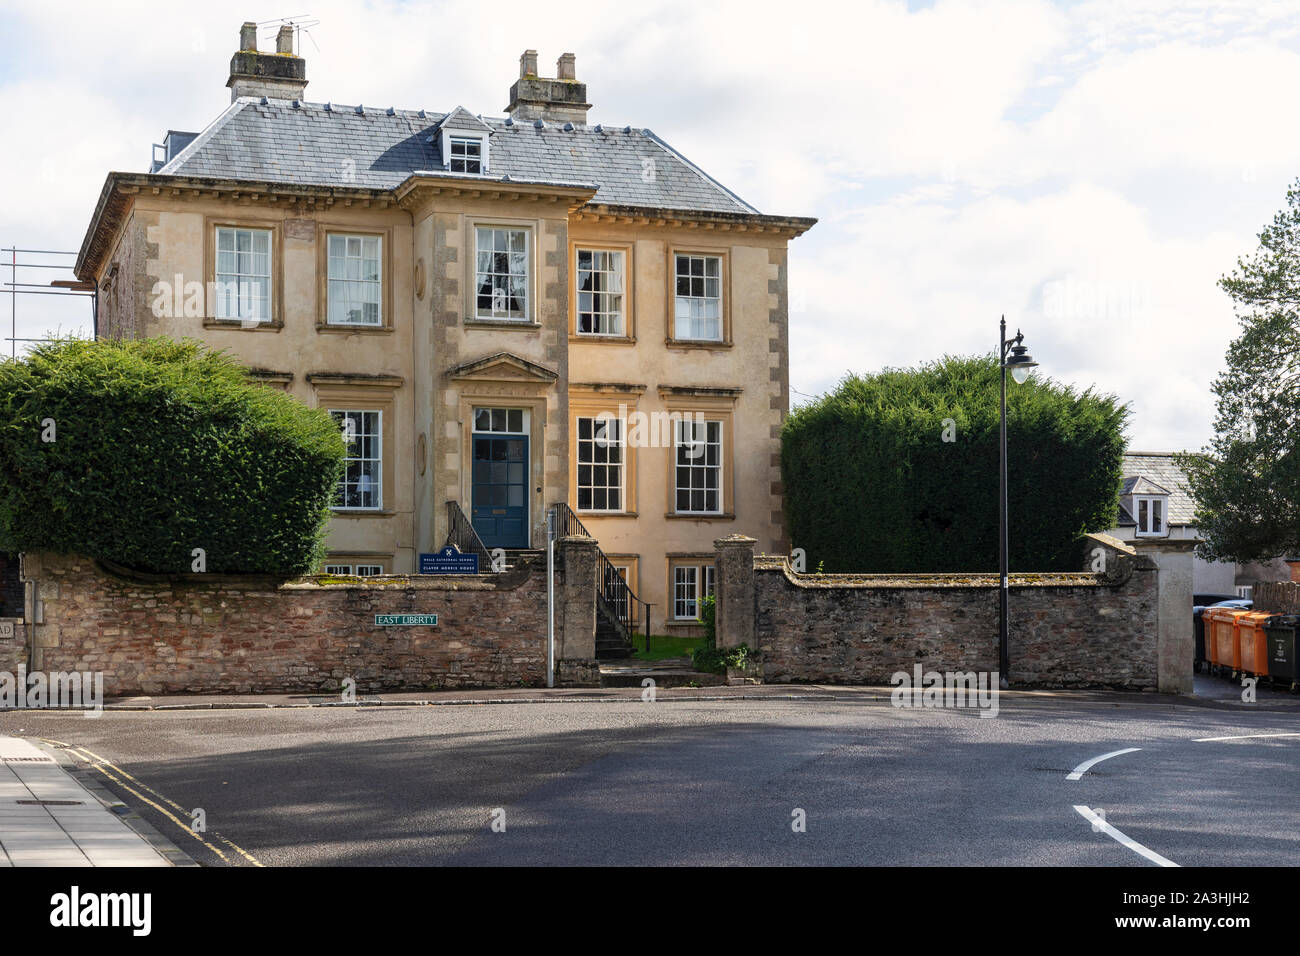 Wells Cathedral School - Claver Morris House, The Liberty - Wells, Somerset, England Stock Photo